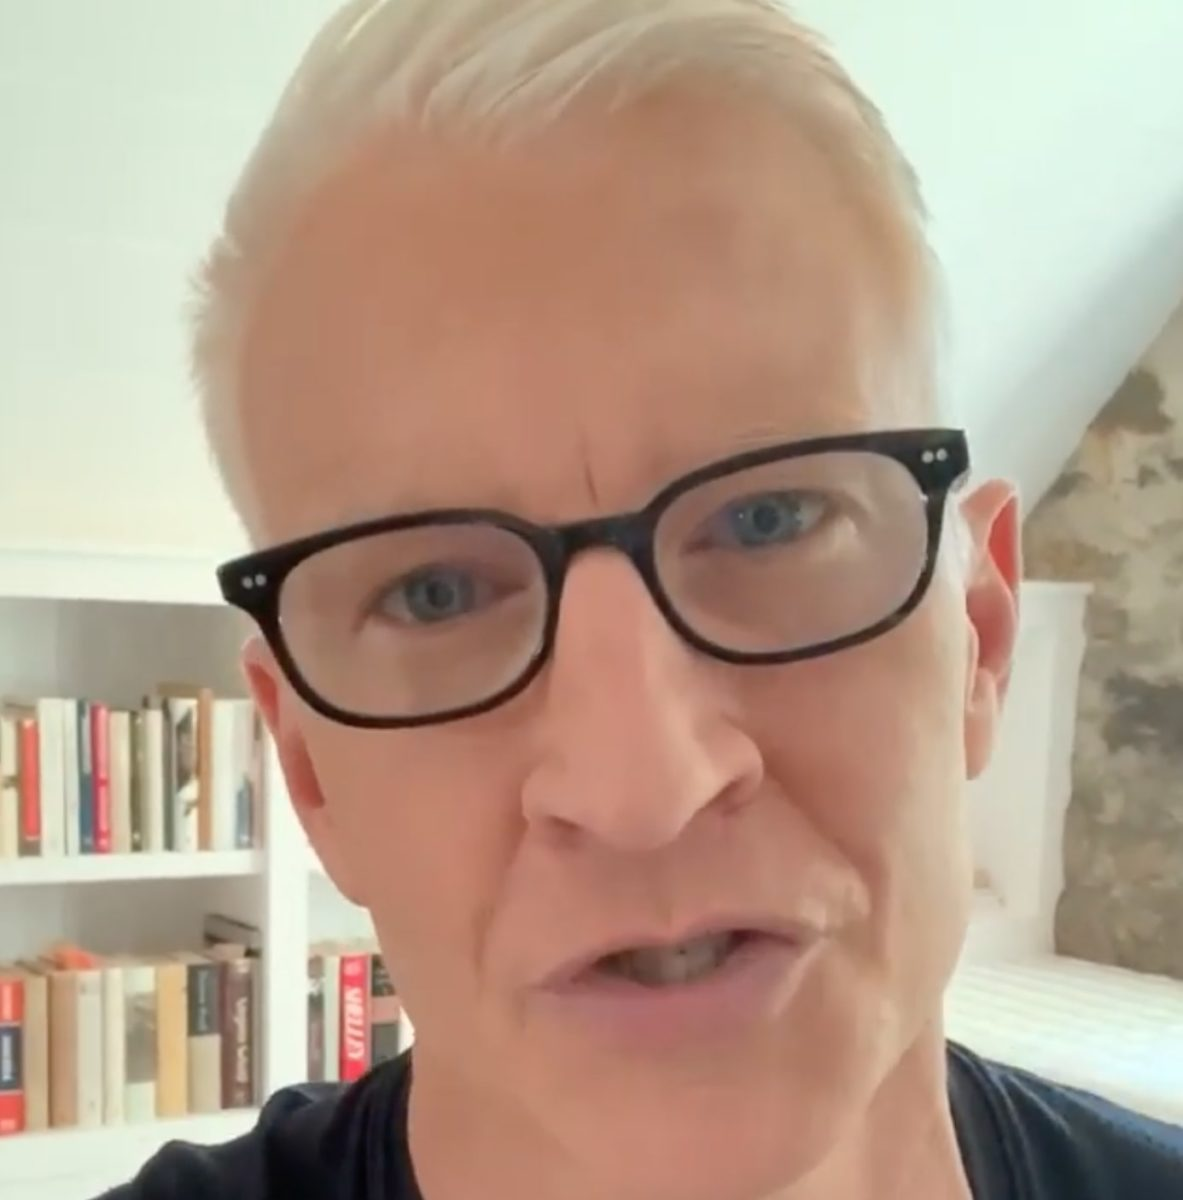 Anderson Cooper Says 3-Month-Old Sleeps 12 Hours A Night